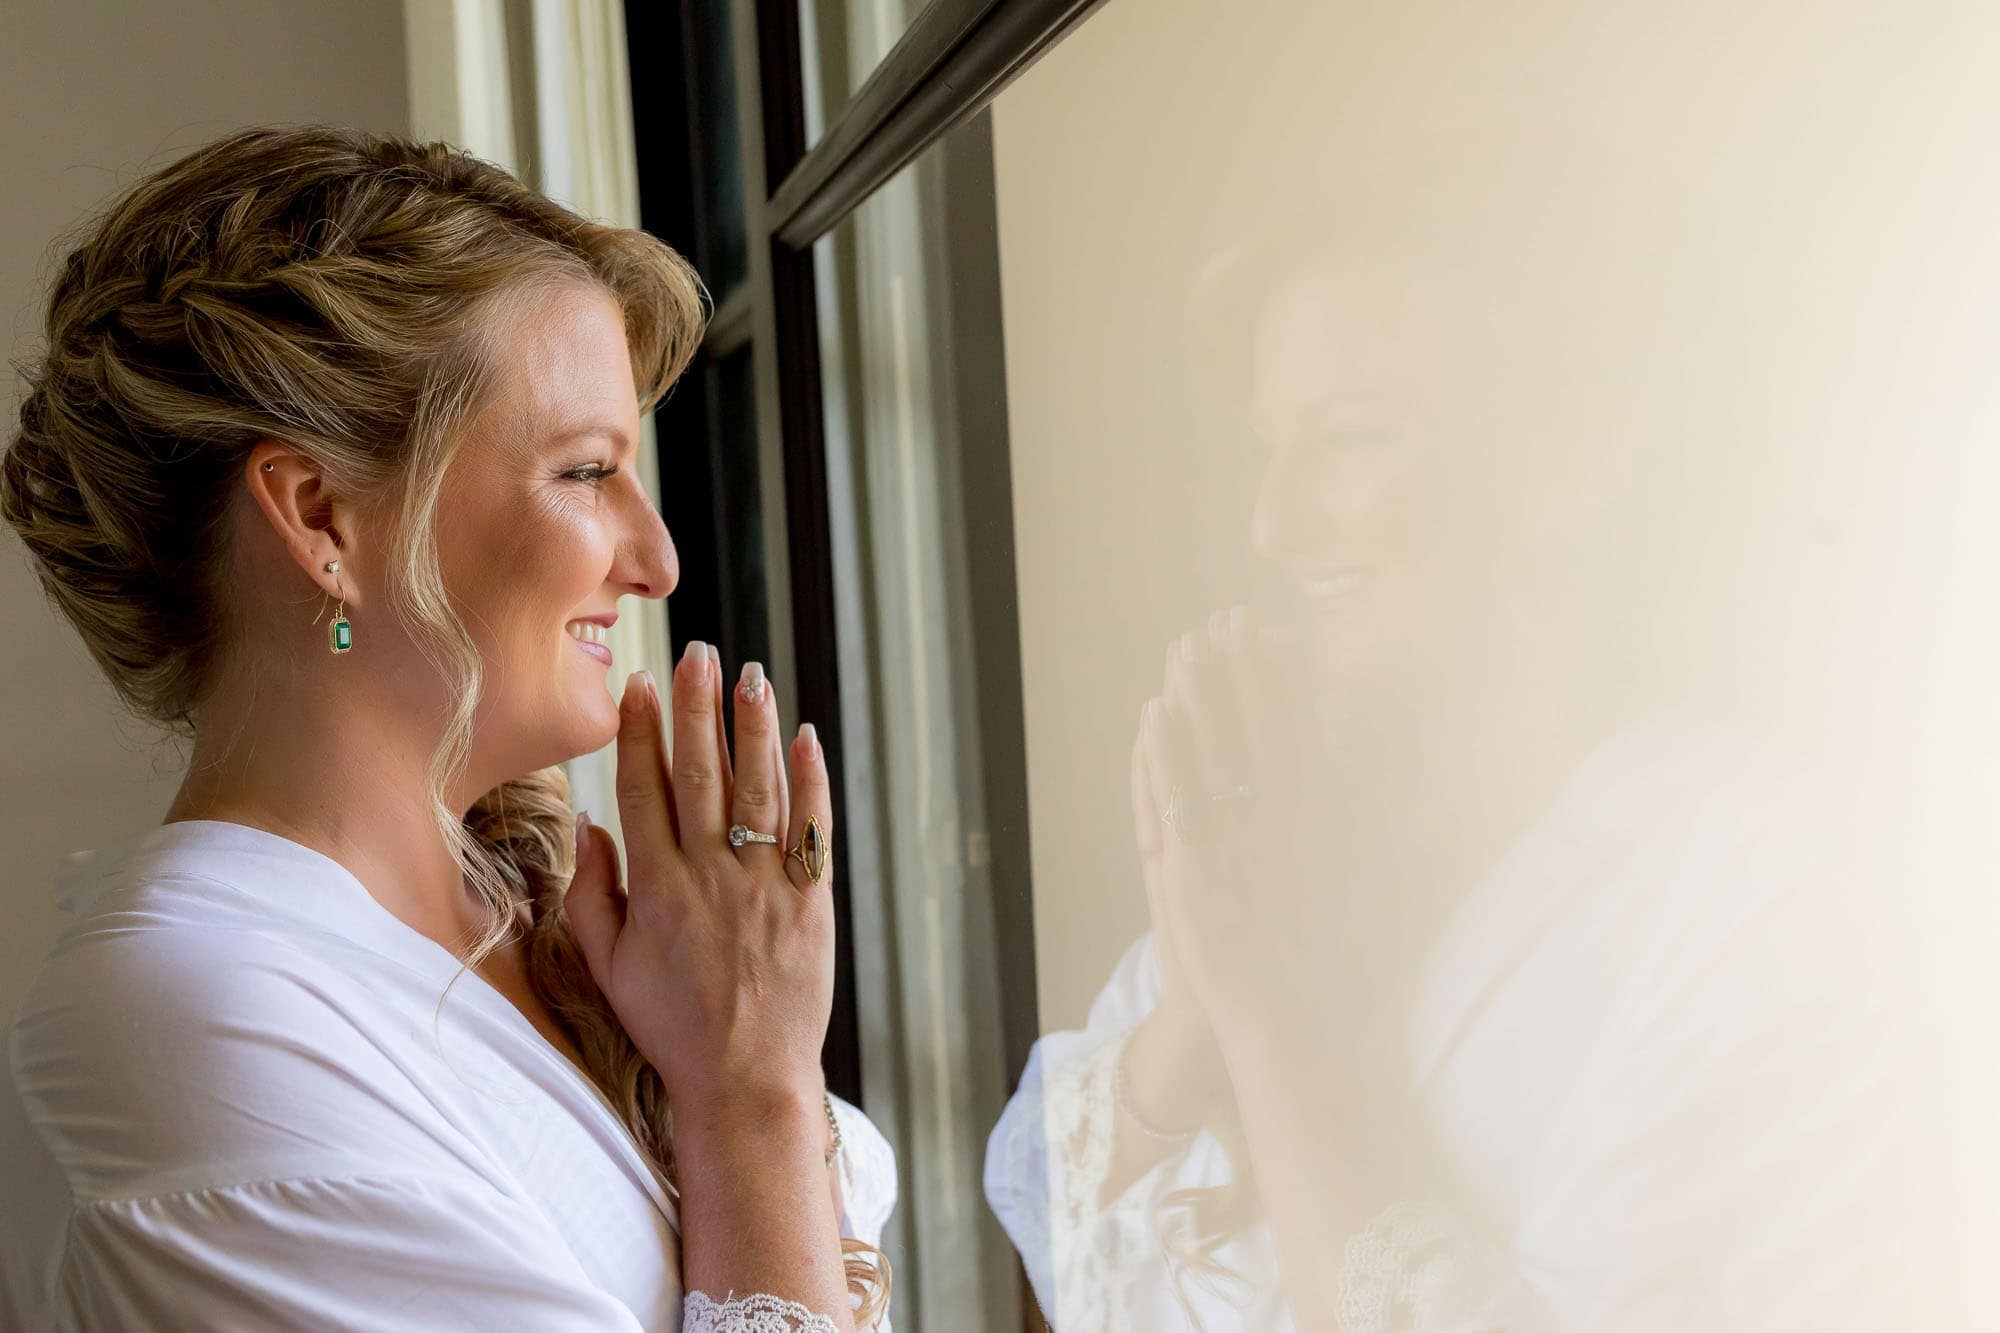 The bride looking out the window before the ceremony and beach wedding reception